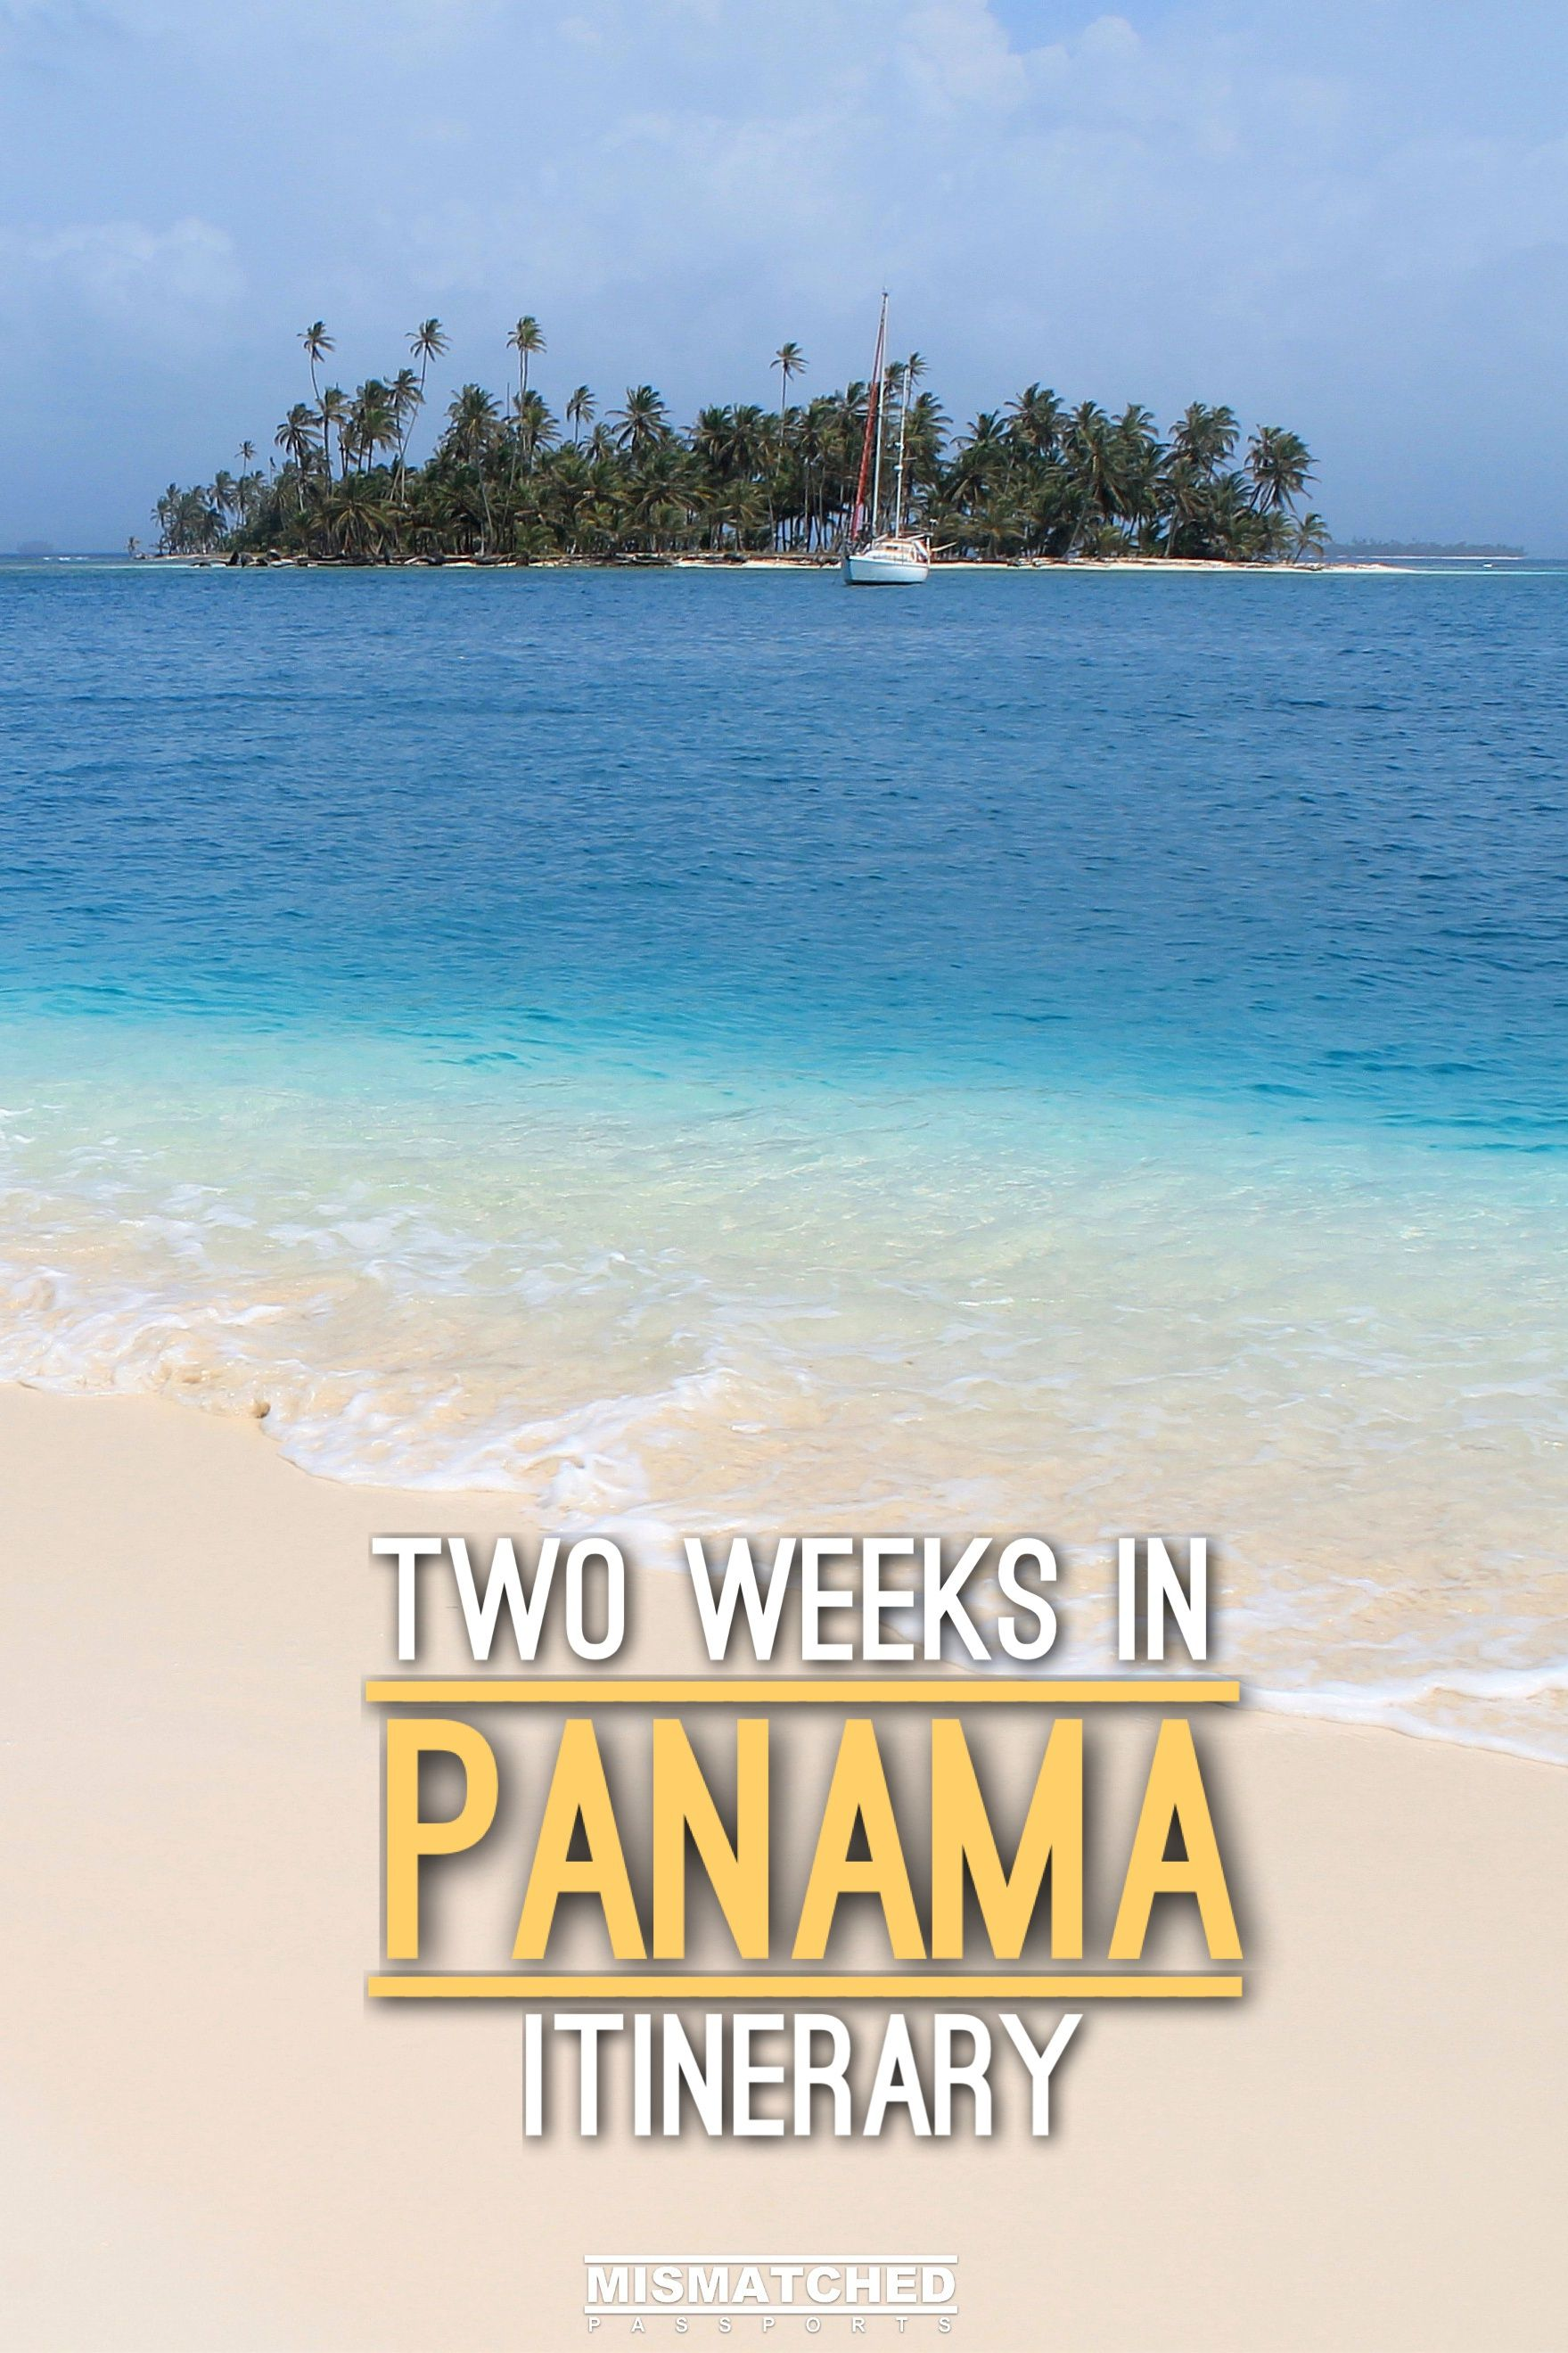 Planning To Visit Panama From The Best Beaches San Blas Islands Bocas Del Toro Colonial Old City Check Out Places Go In This Two